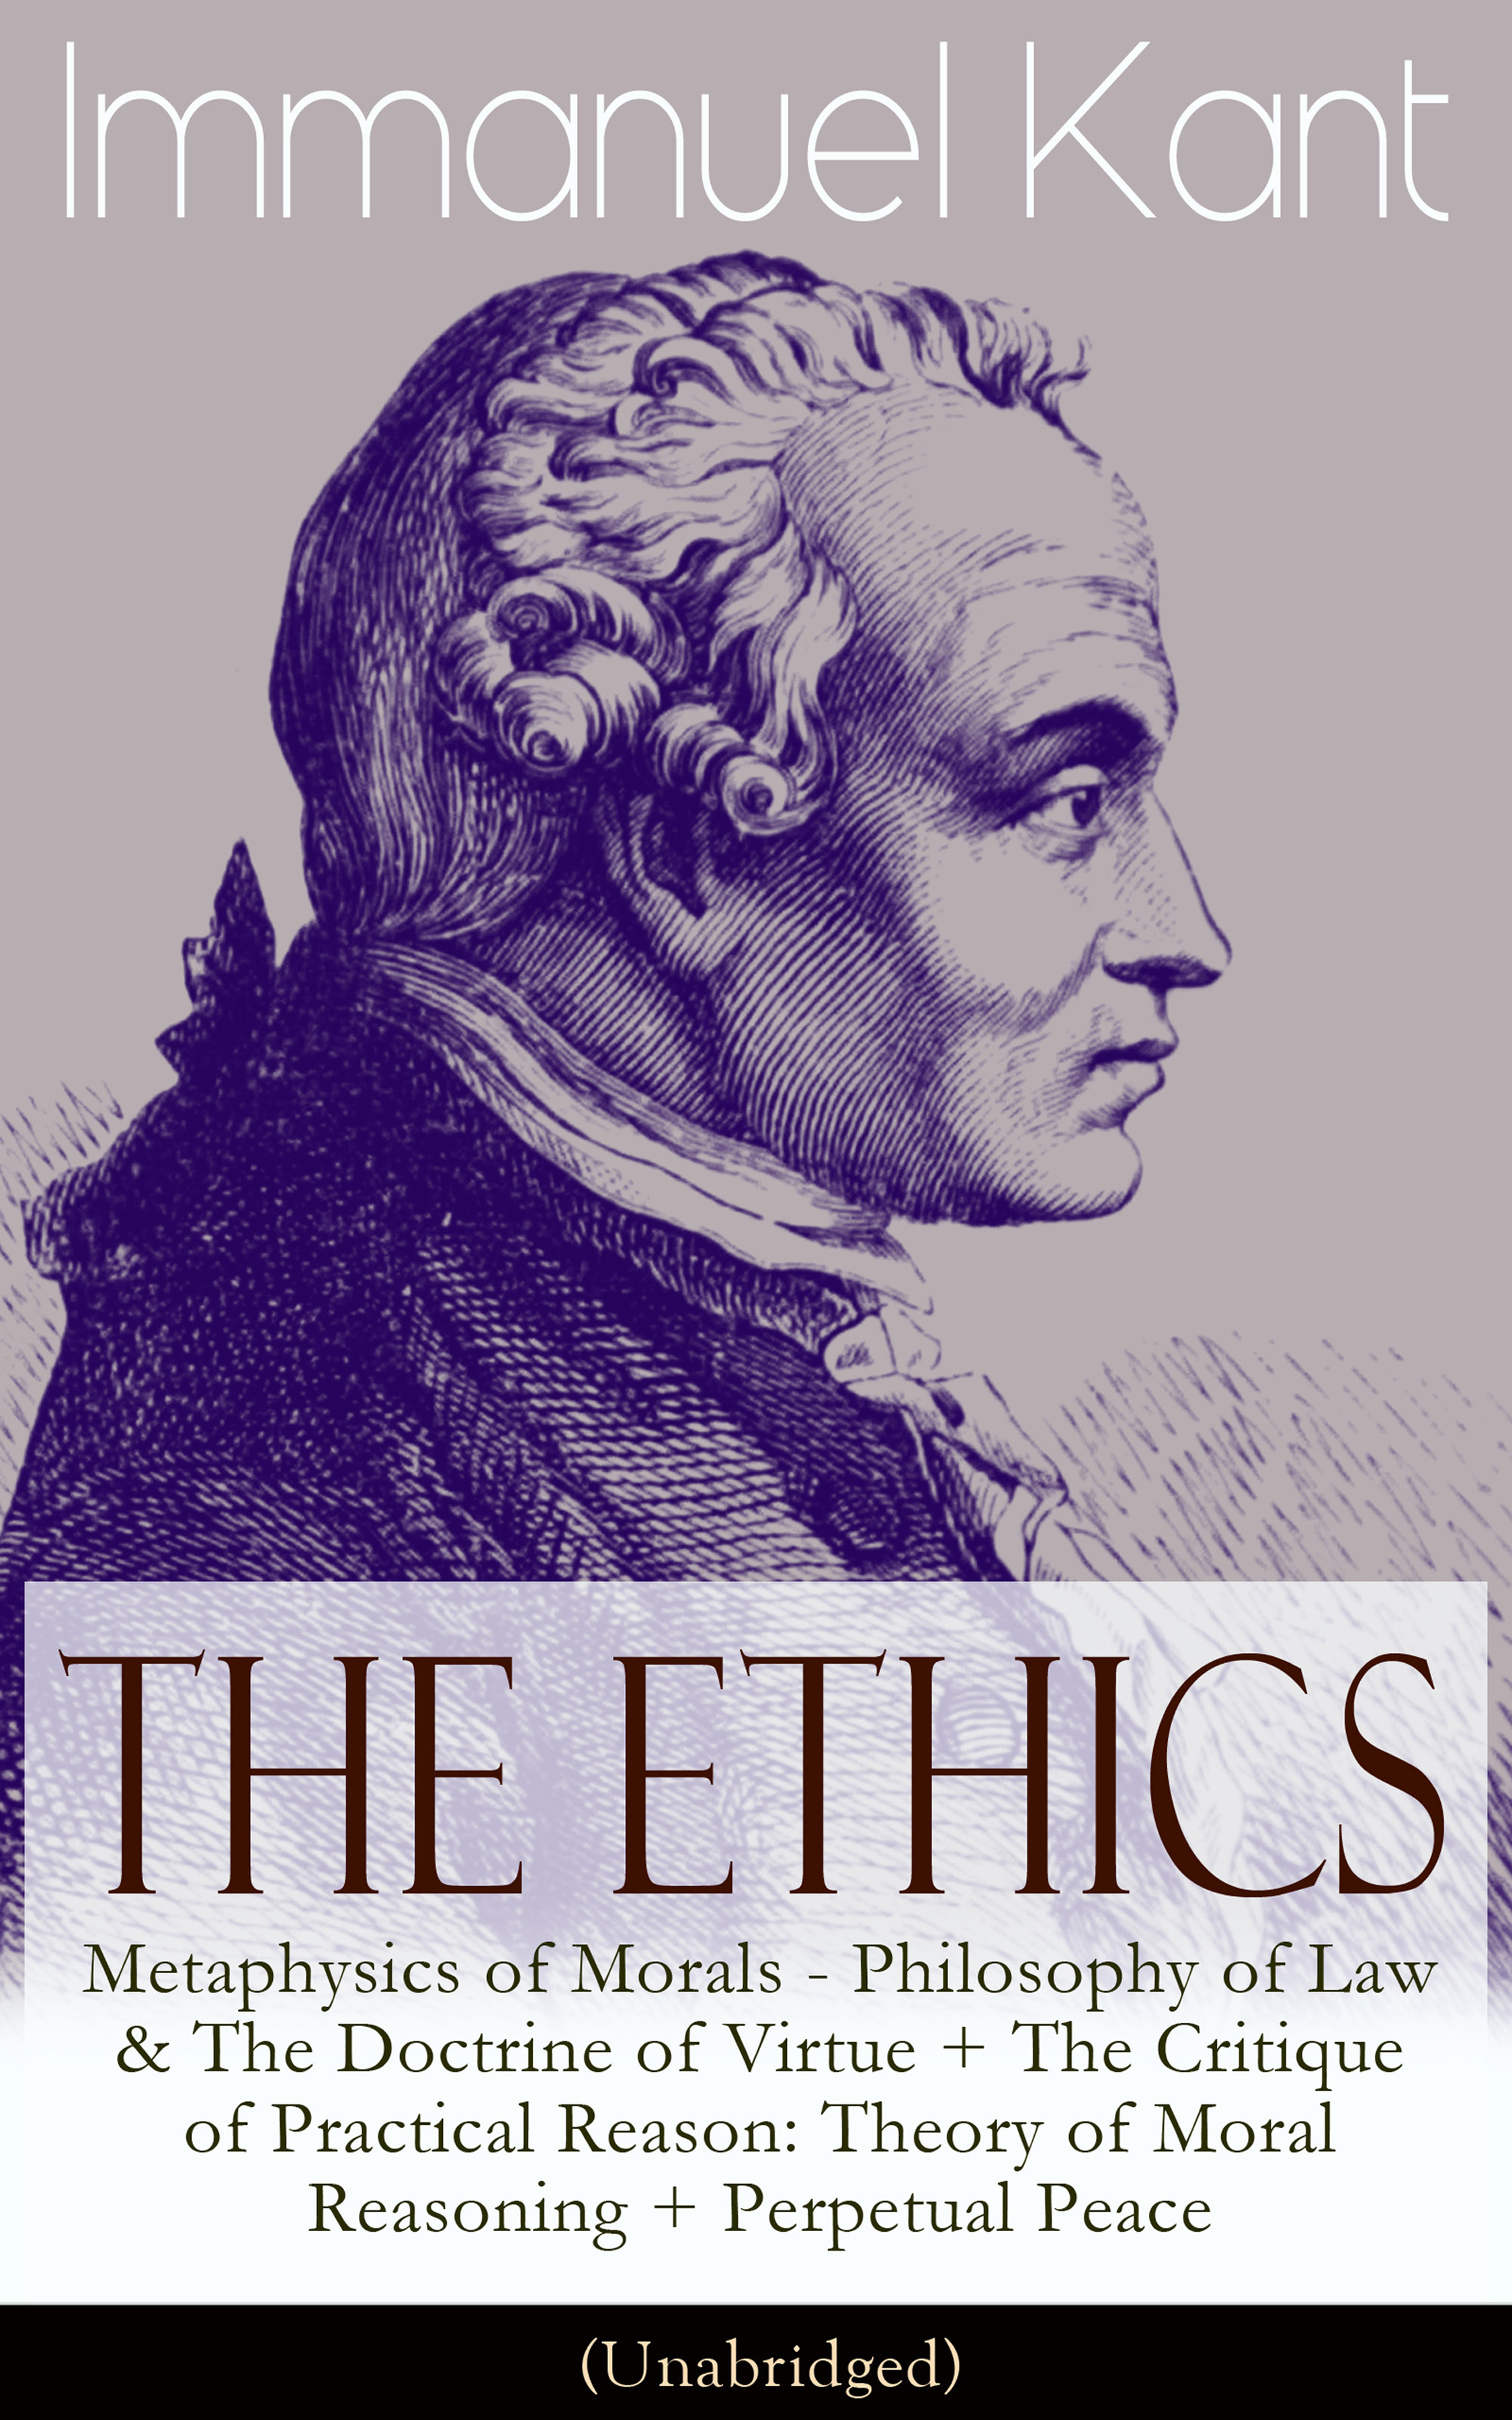 Immanuel Kant The Ethics of Immanuel Kant: Metaphysics of Morals - Philosophy of Law & The Doctrine of Virtue + The Critique of Practical Reason: Theory of Moral Reasoning + Perpetual Peace (Unabridged)